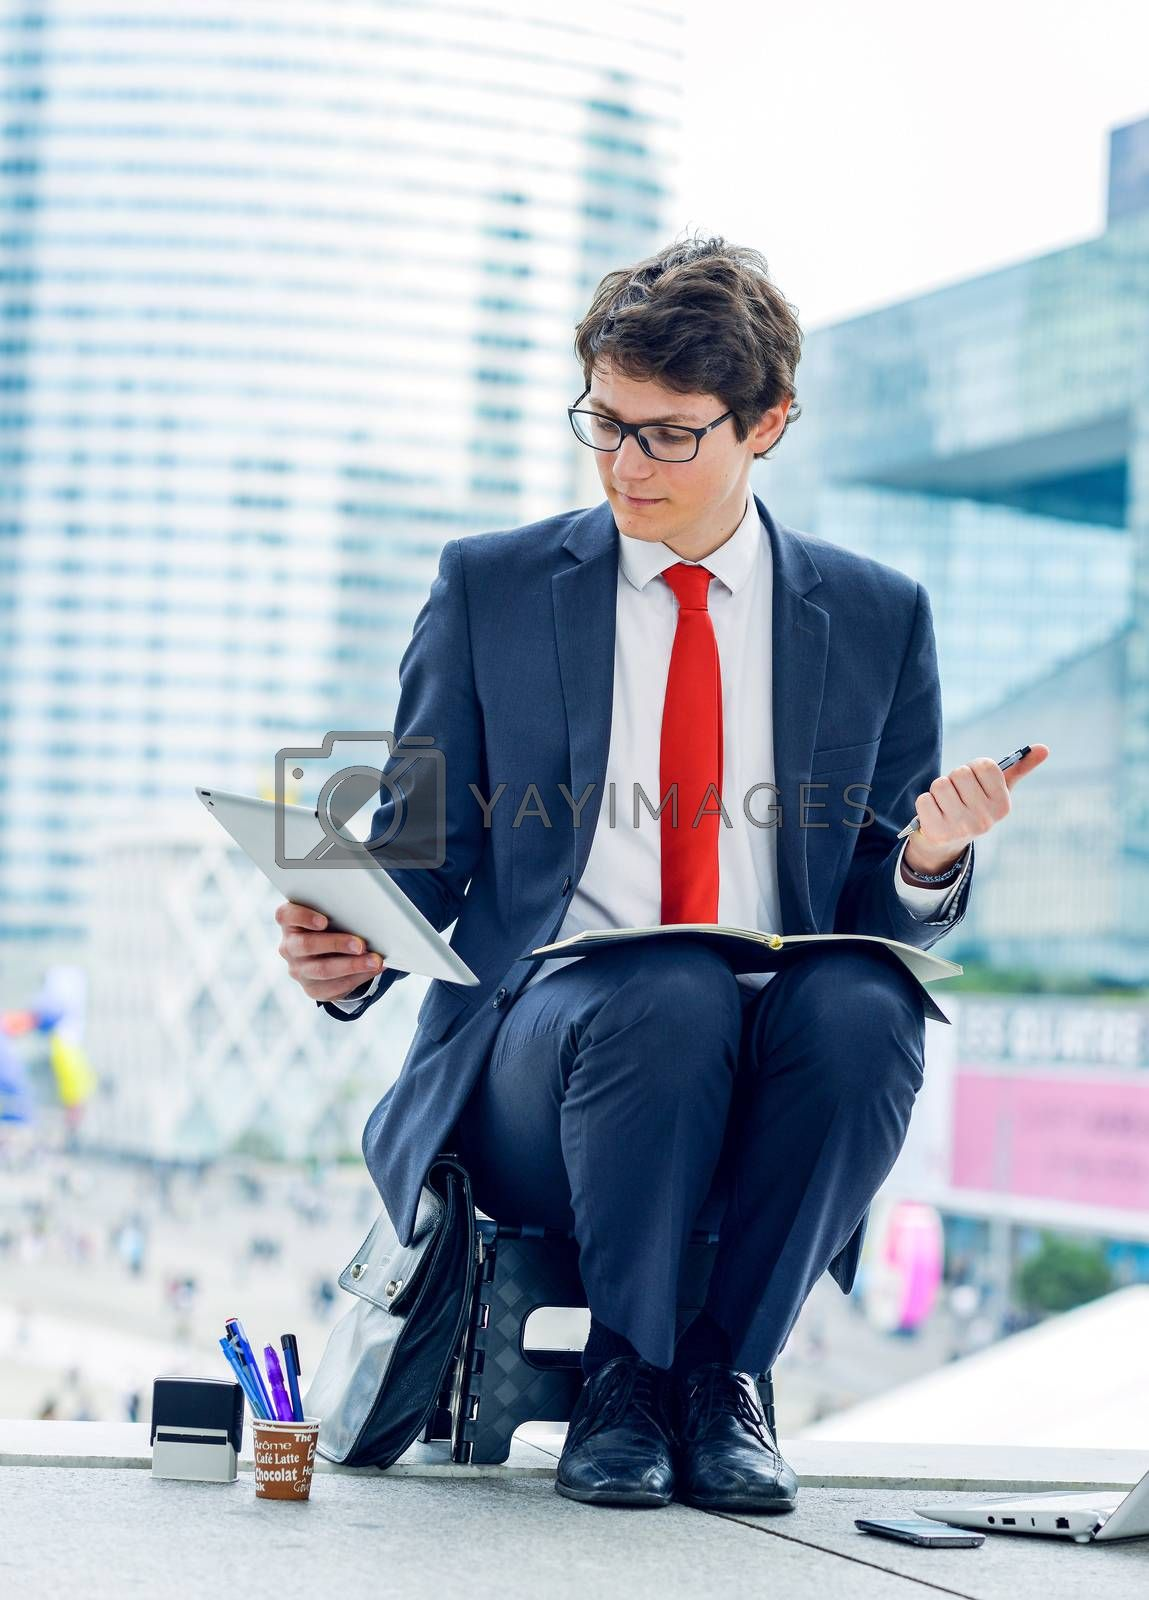 Royalty free image of Junior executive dynamic working outside of his office by pixinoo